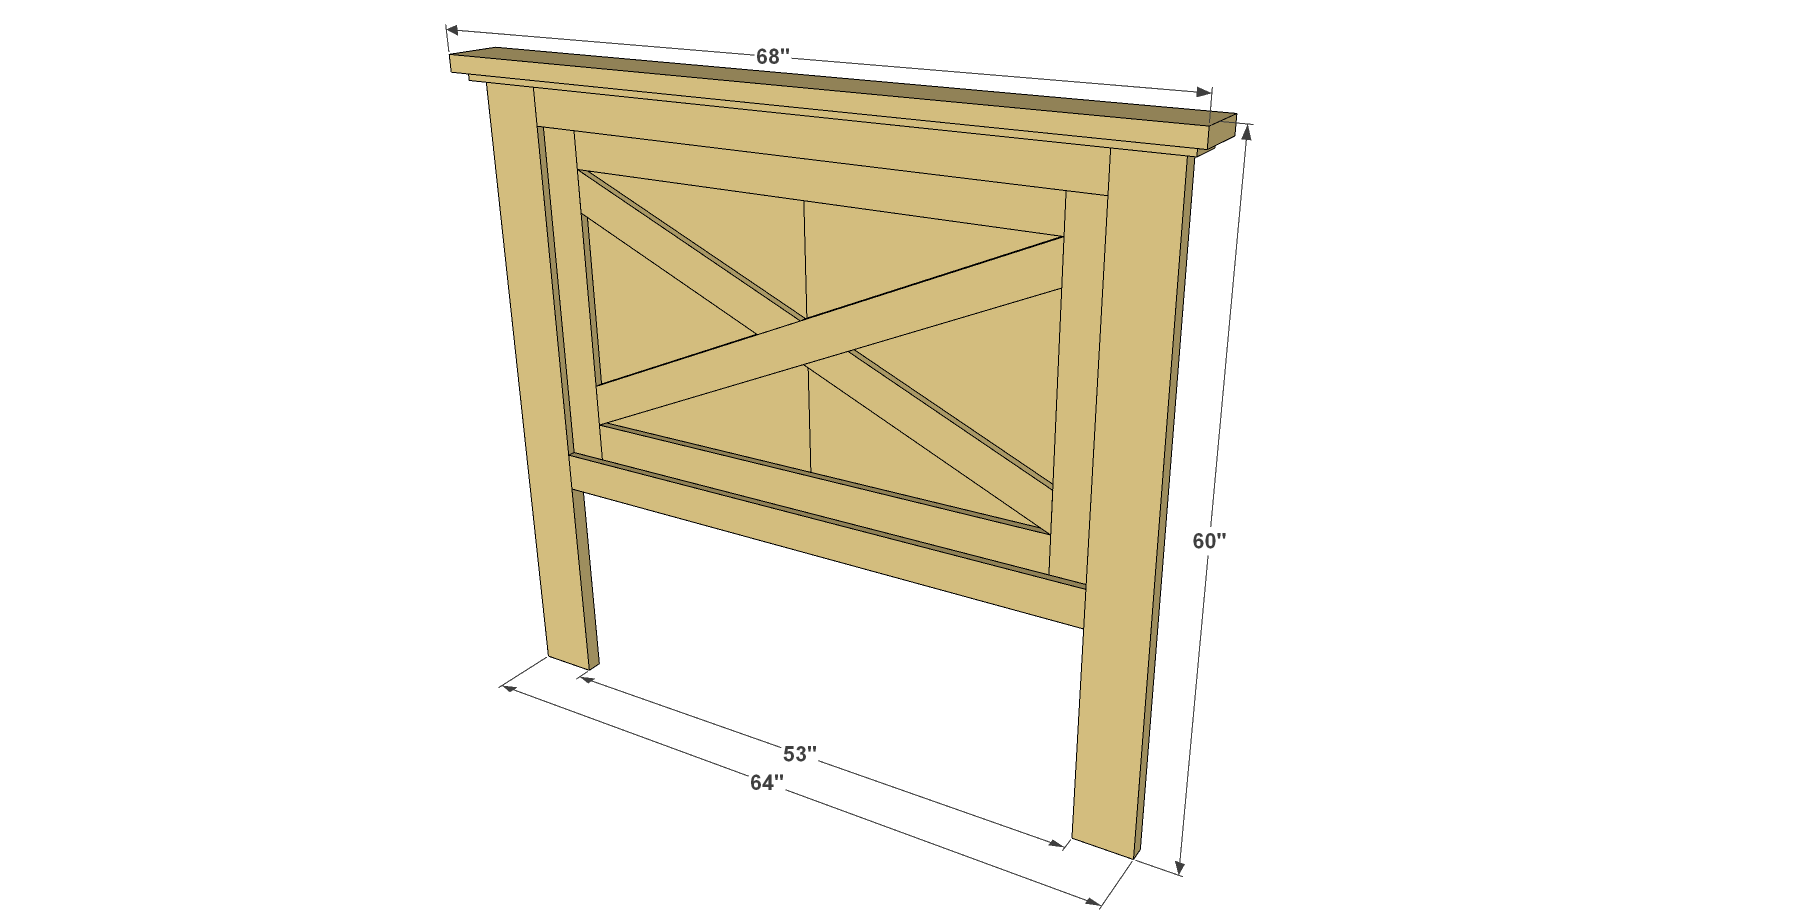 farmhouse-headboard-overall-with-dimensions